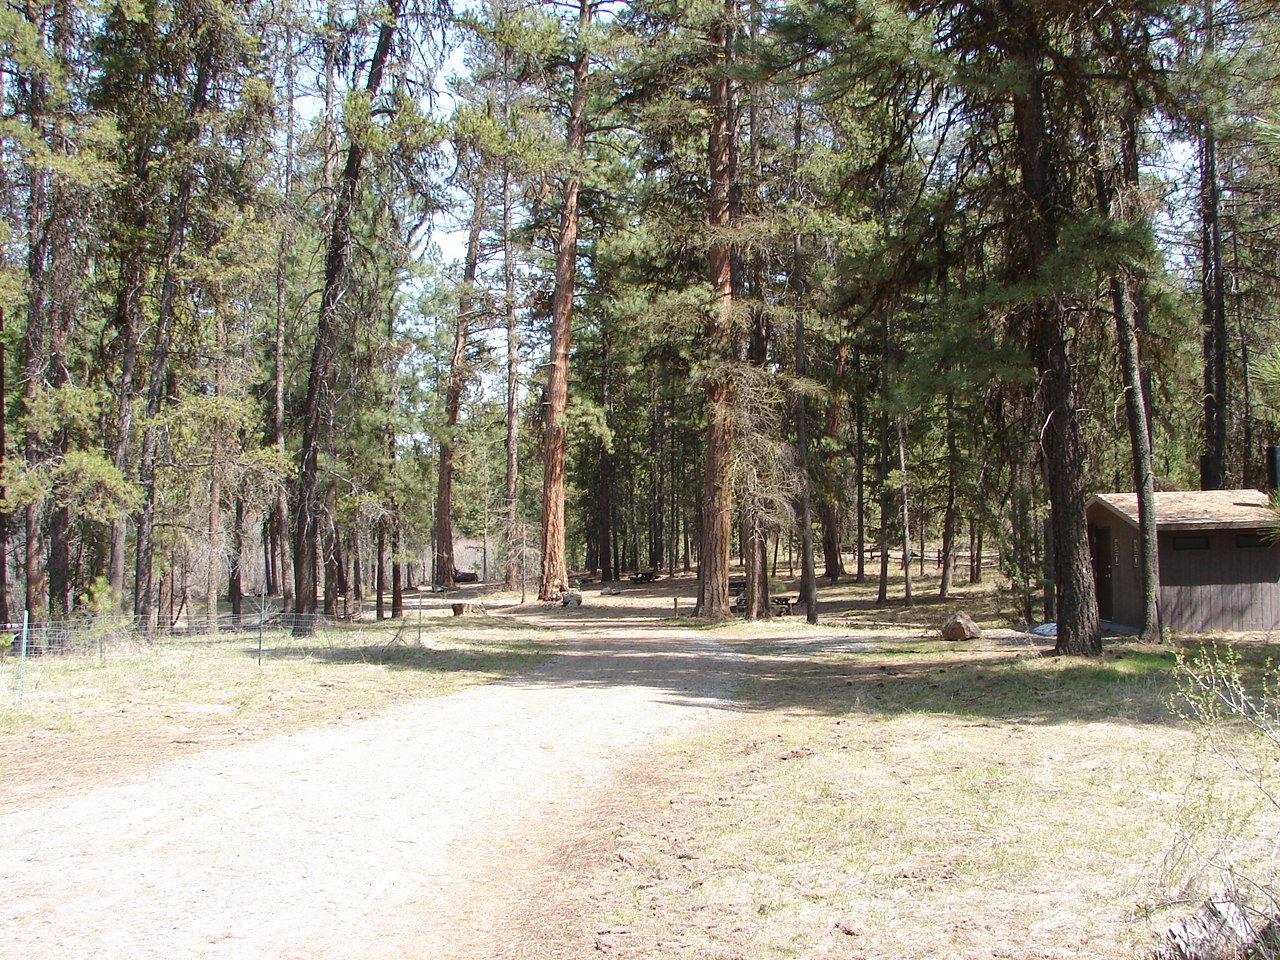 A campground road with tall ponderosa pine trees along the side